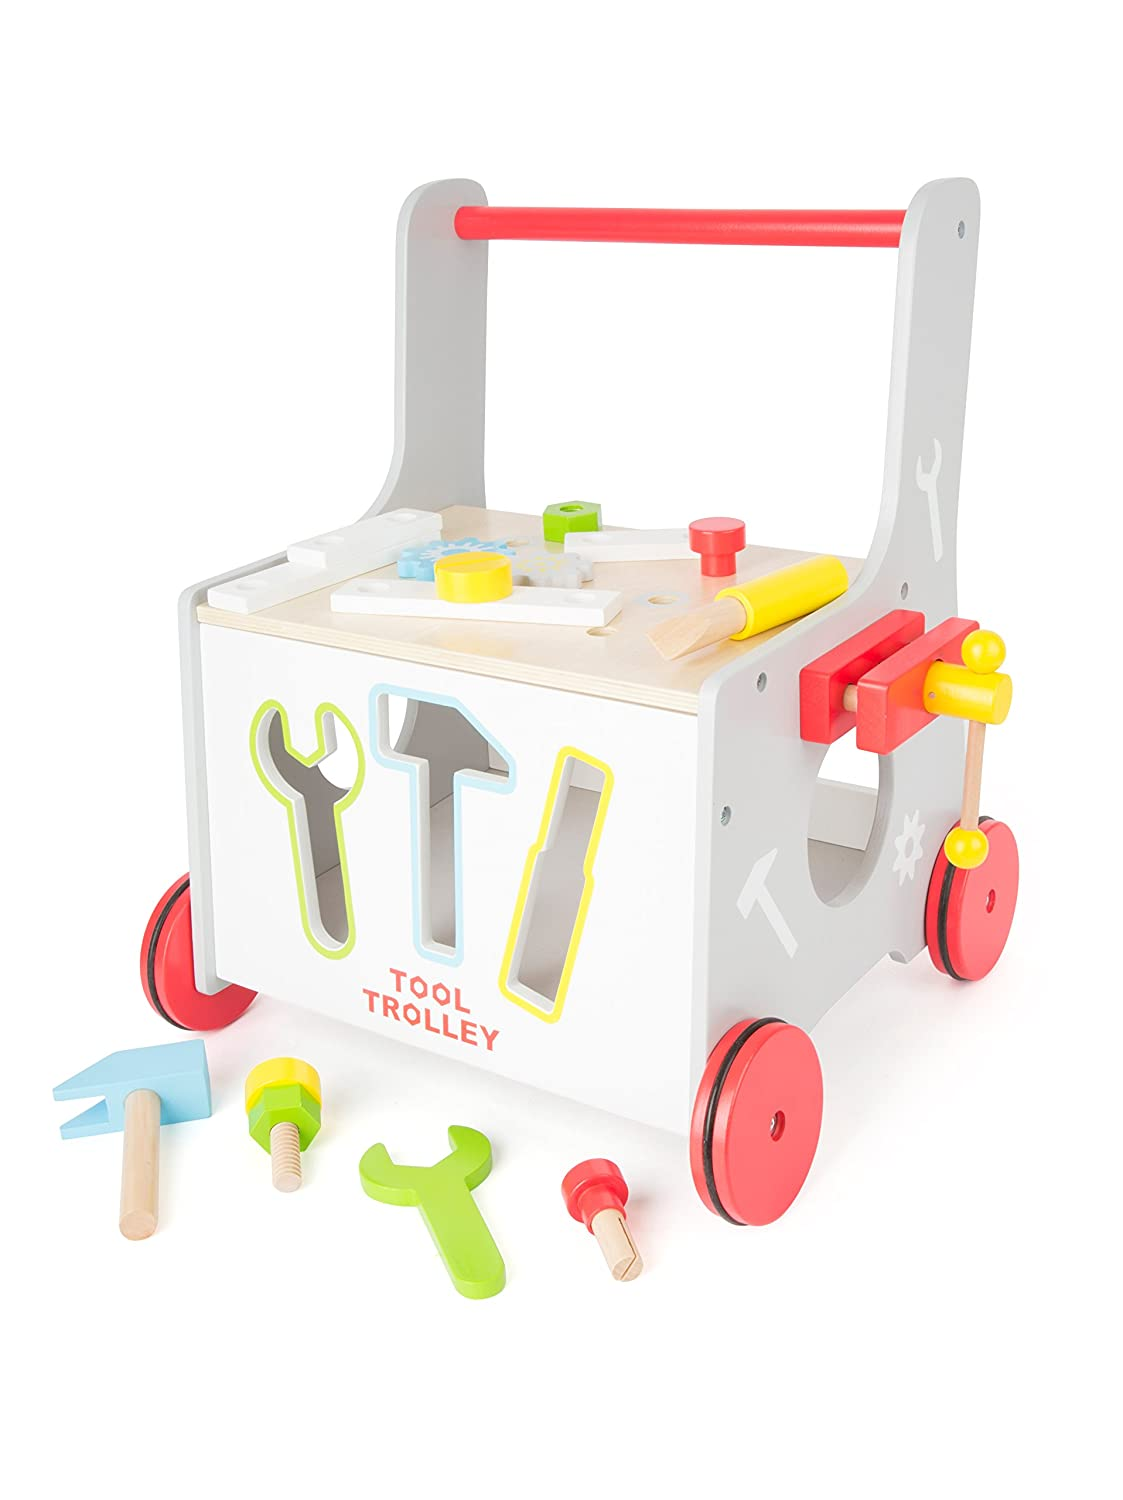 2-in-1 Baby Walker, Tools, Workshop, Walking Assistant, Shape Fitting Game with rubber-finished wheels, 34 x 36 x 44 cm, set of 13 accessories Small Foot